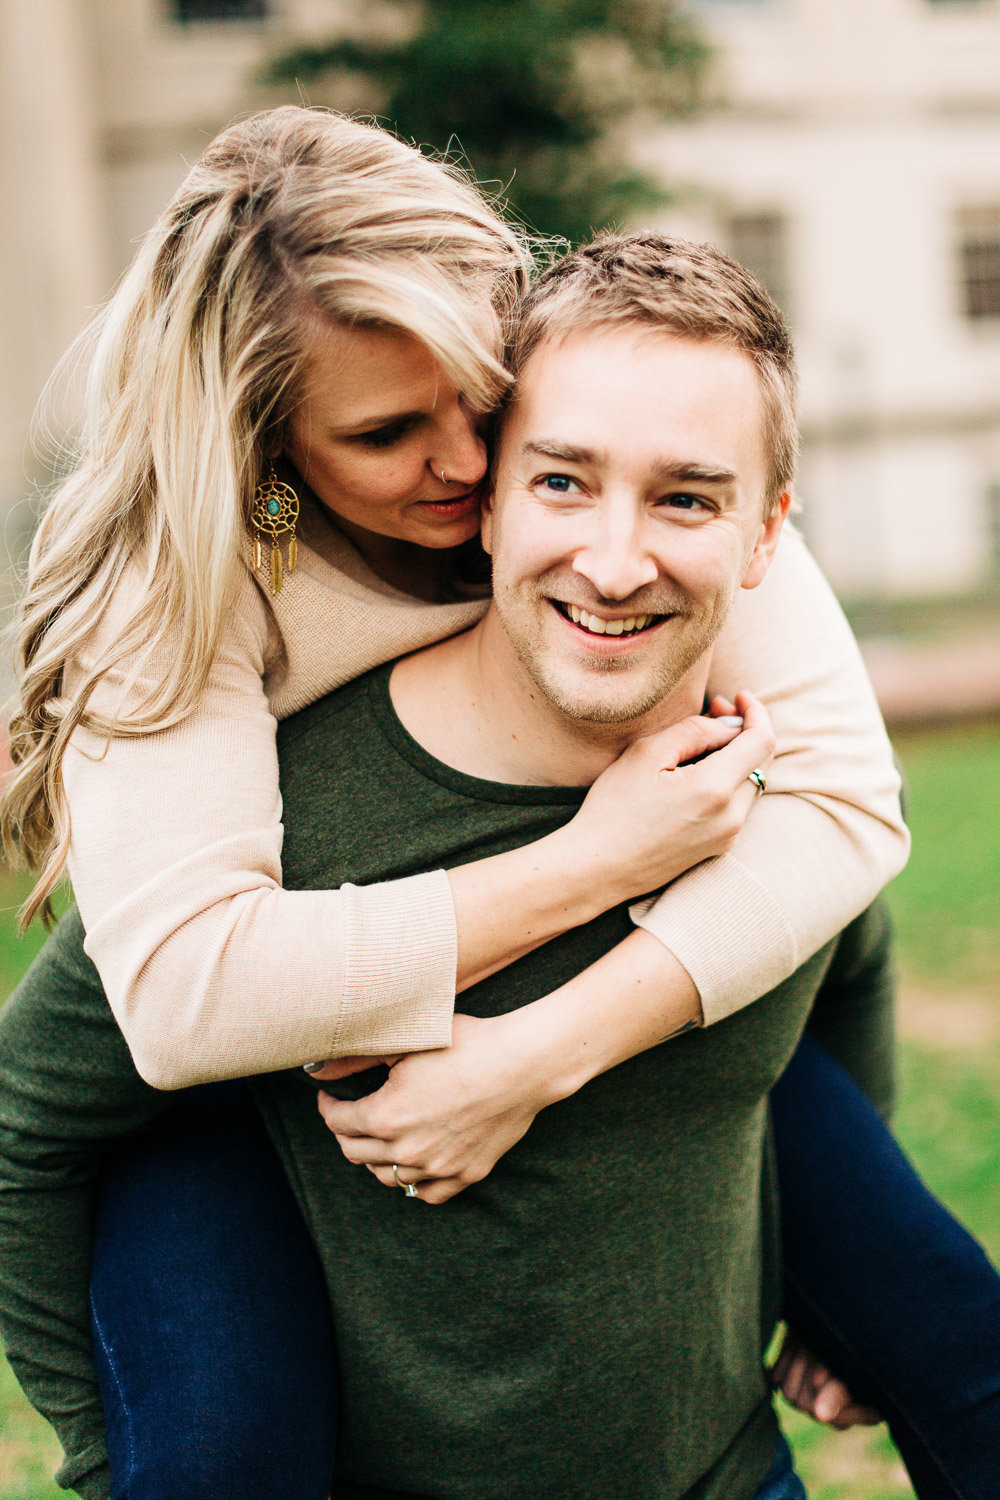 chapel-hill-engagement-photographer-45